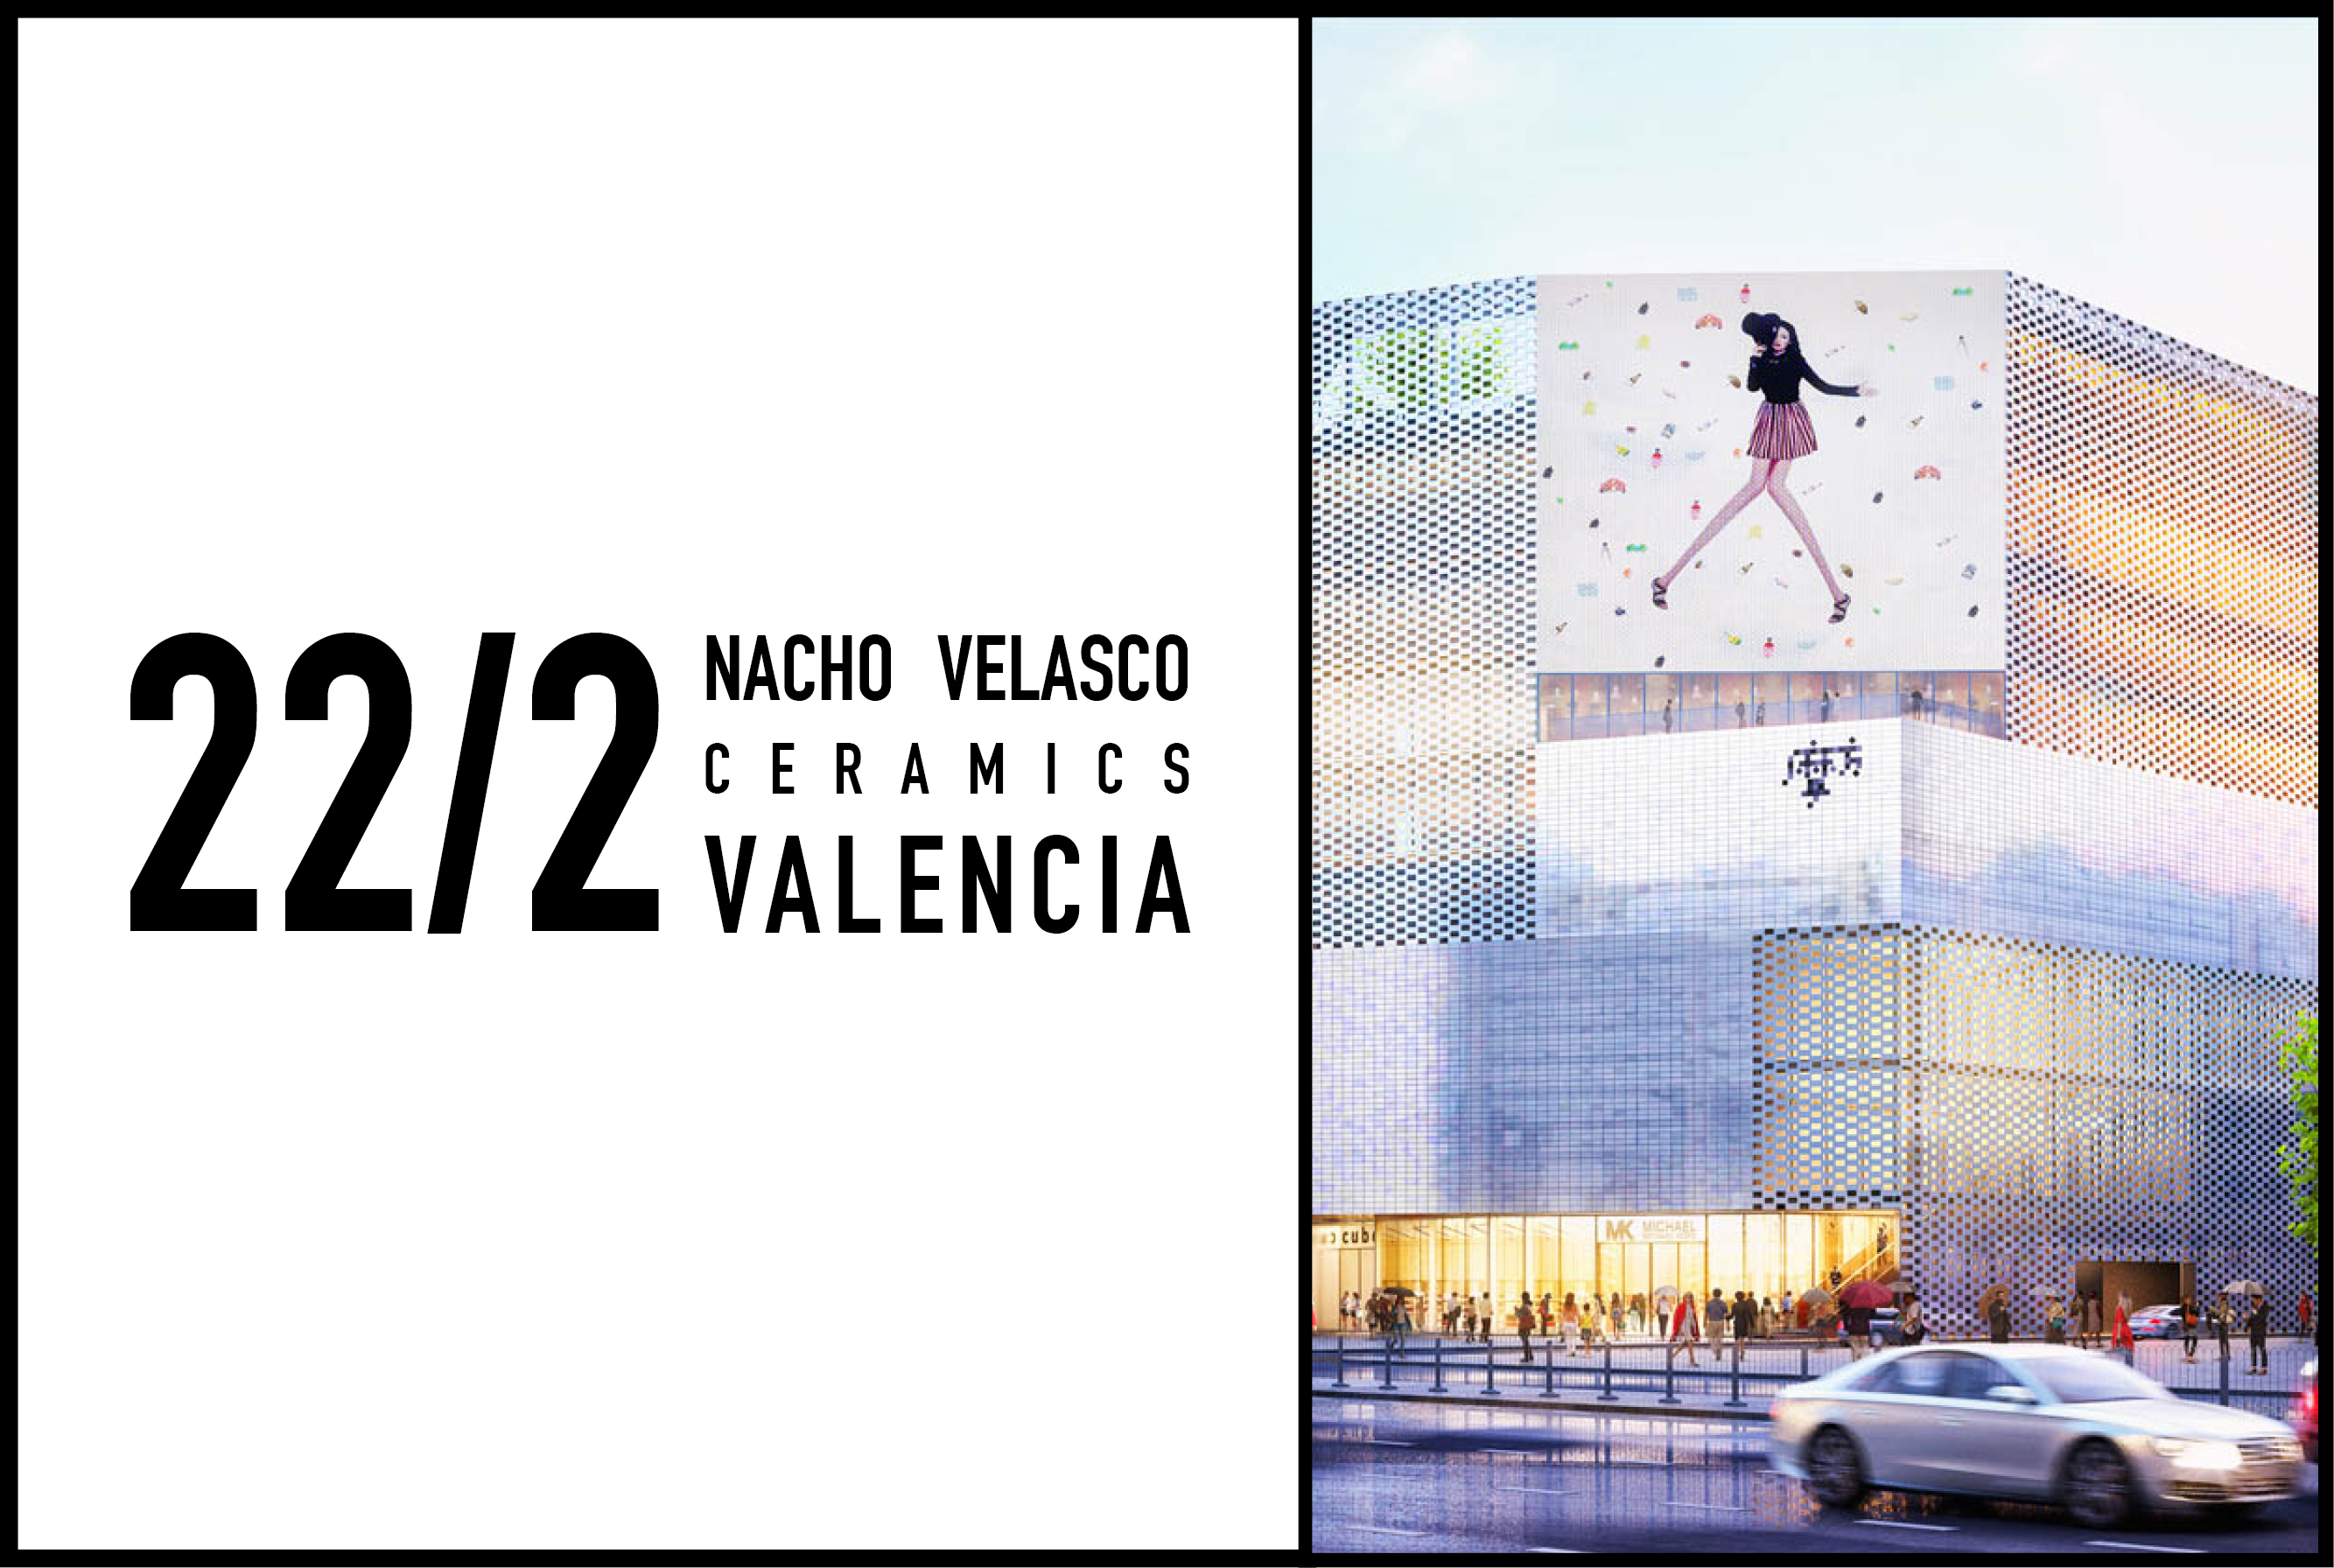 Nacho Velasco to give a talk on Ceramics and Architecture in Valencia, 22 February 2017